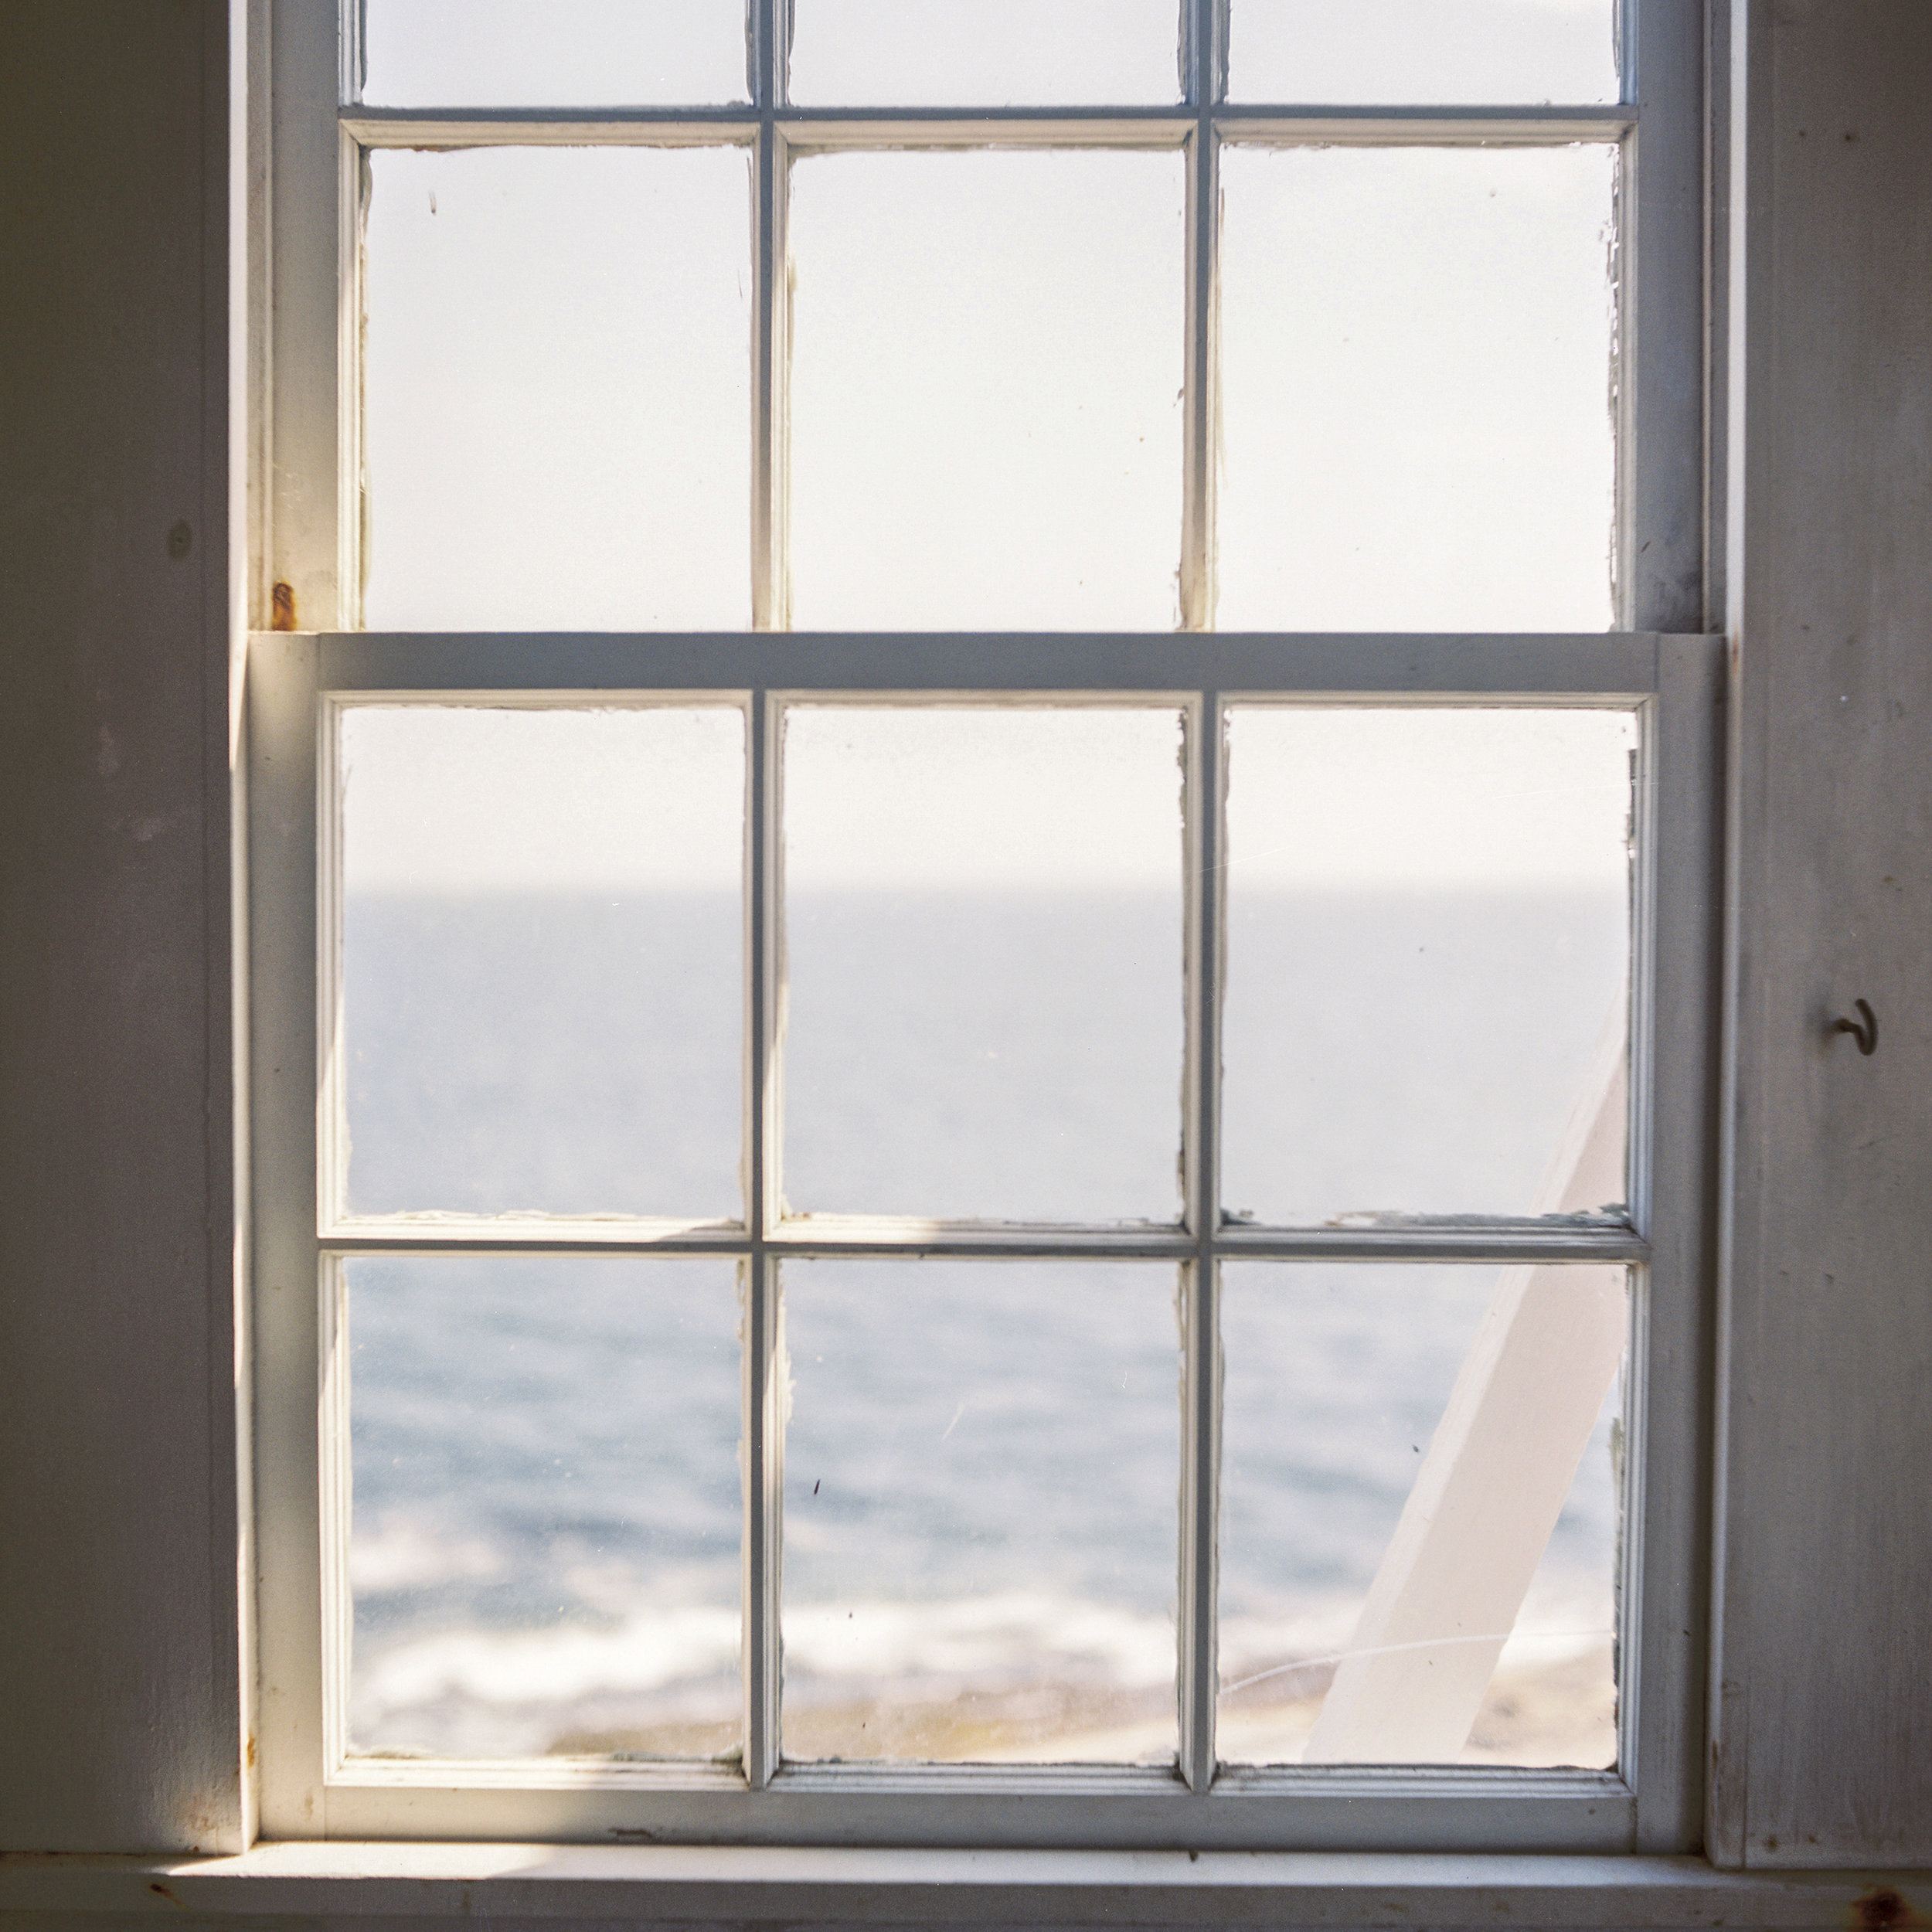 Window, Pemaquid Point, ME, 2013